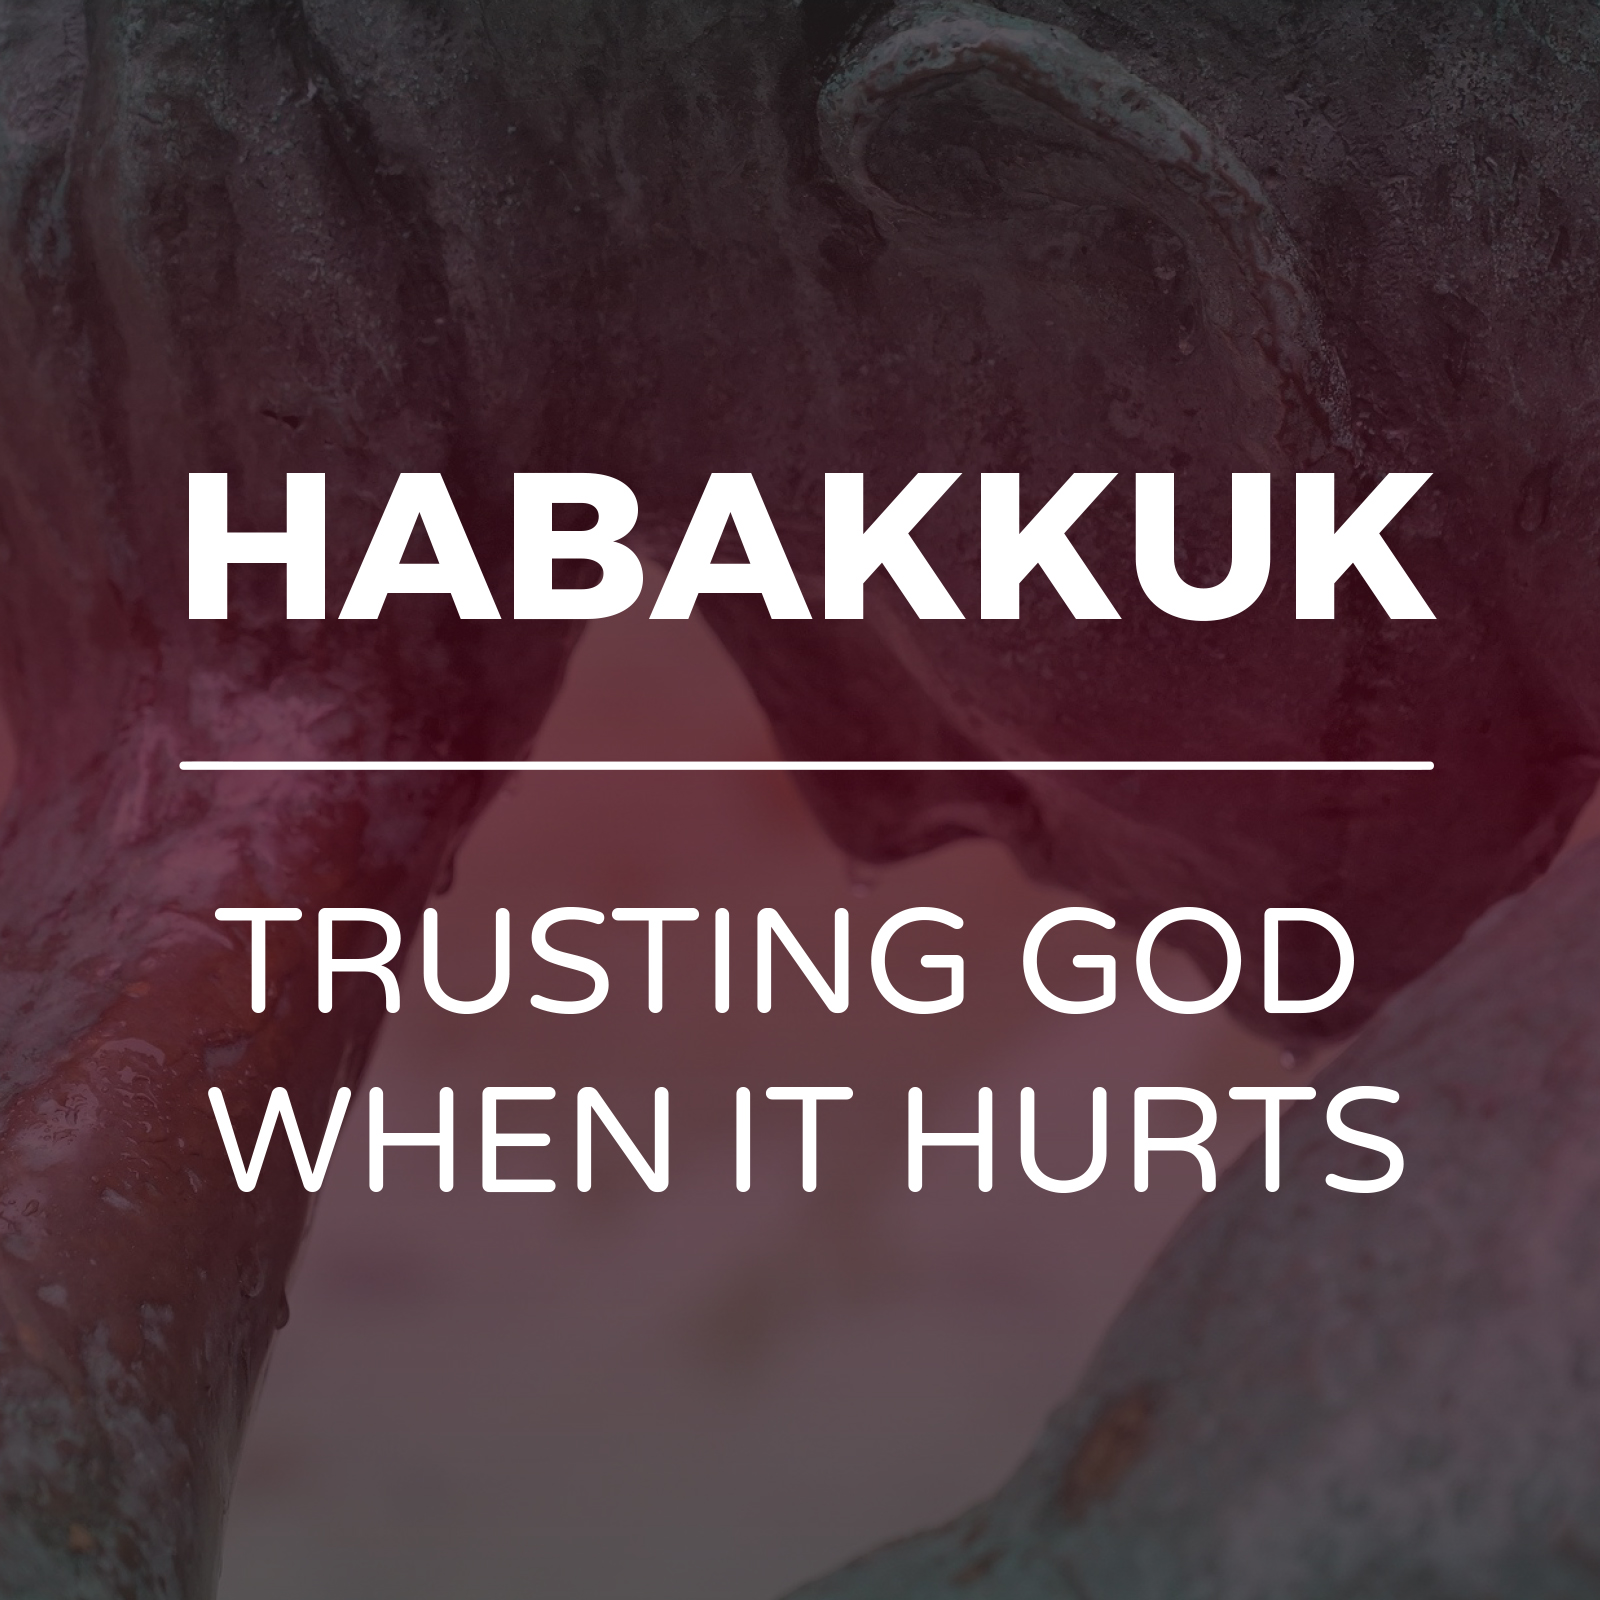 Habakkuk - Trusting God When It Hurts Sermon Series - Hope Church Huddersfield